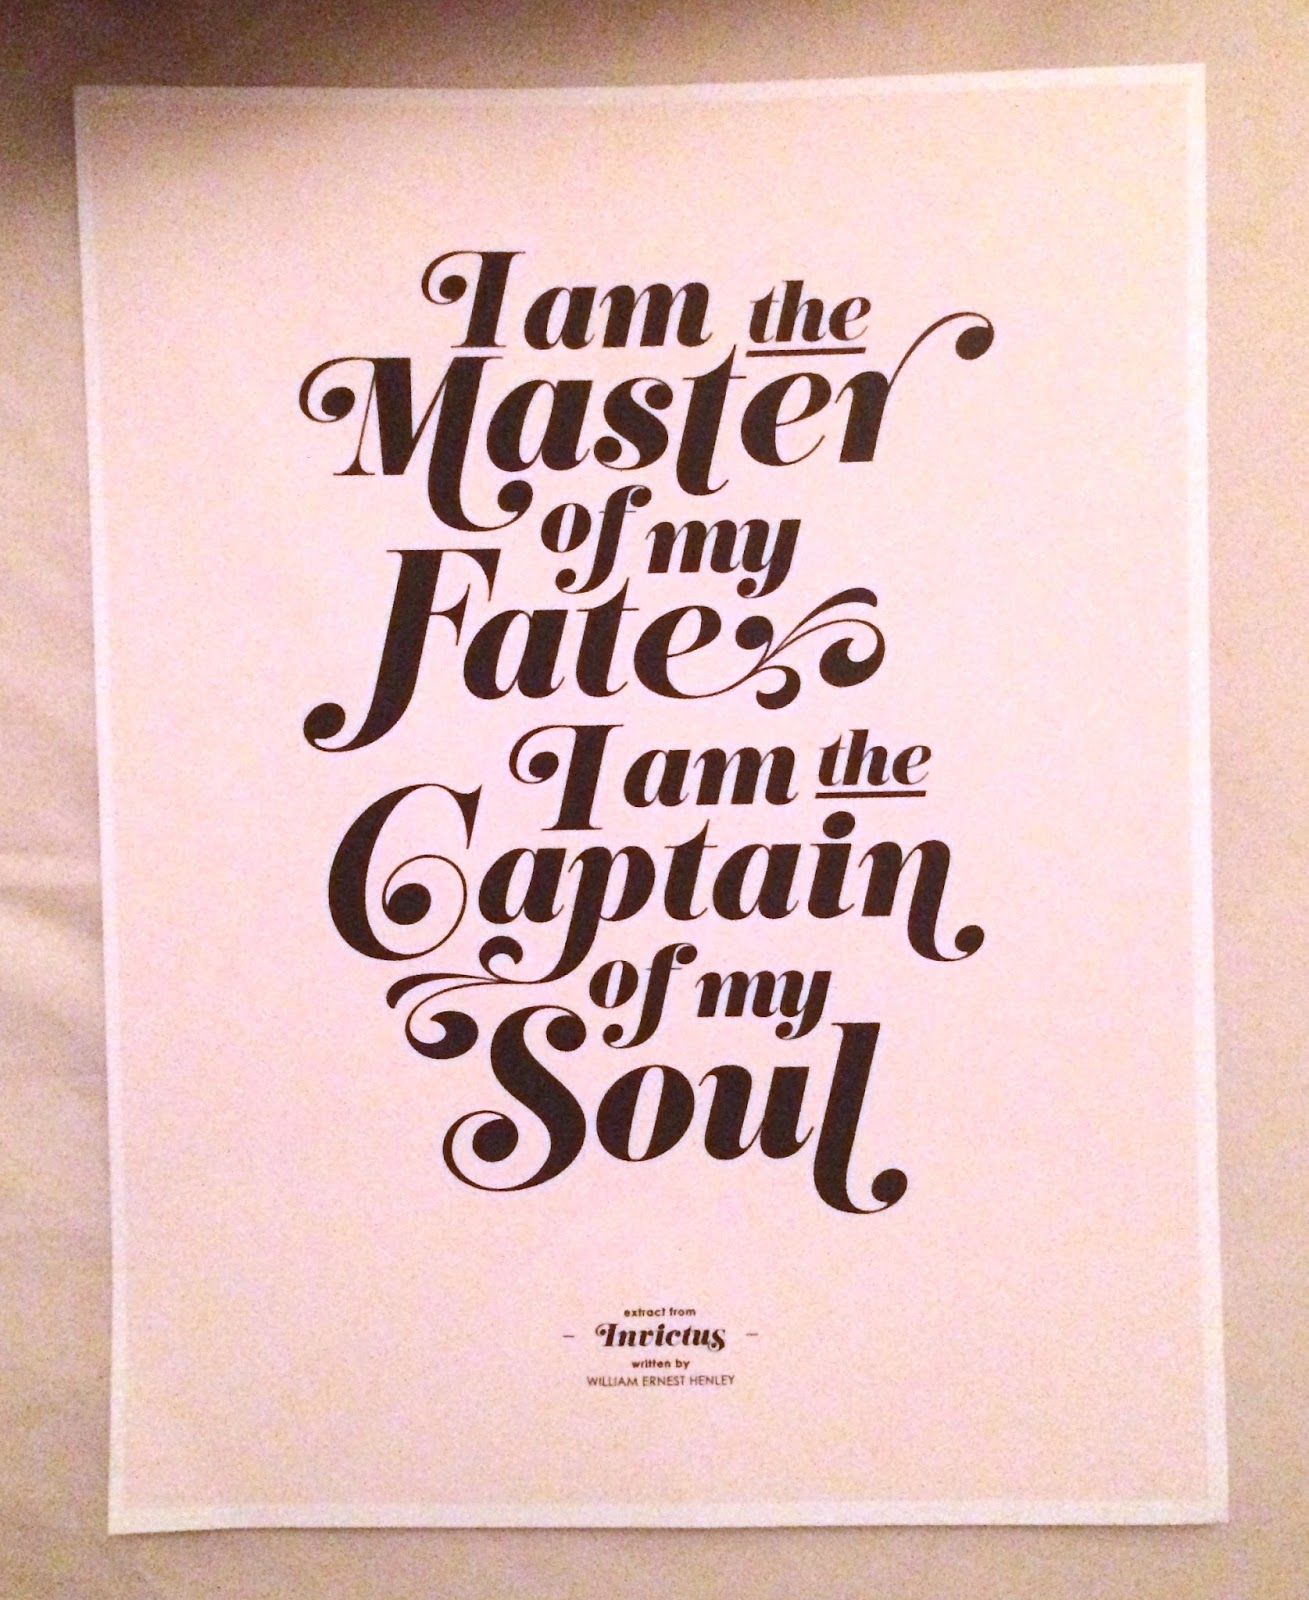 invictus william ernest henley Invictus, meaning unconquerable or undefeated in latin, is a poem by william ernest henley the poem was written while henley was in the hospital being treated for tuberculosis of the bone, also known as pott's disease.